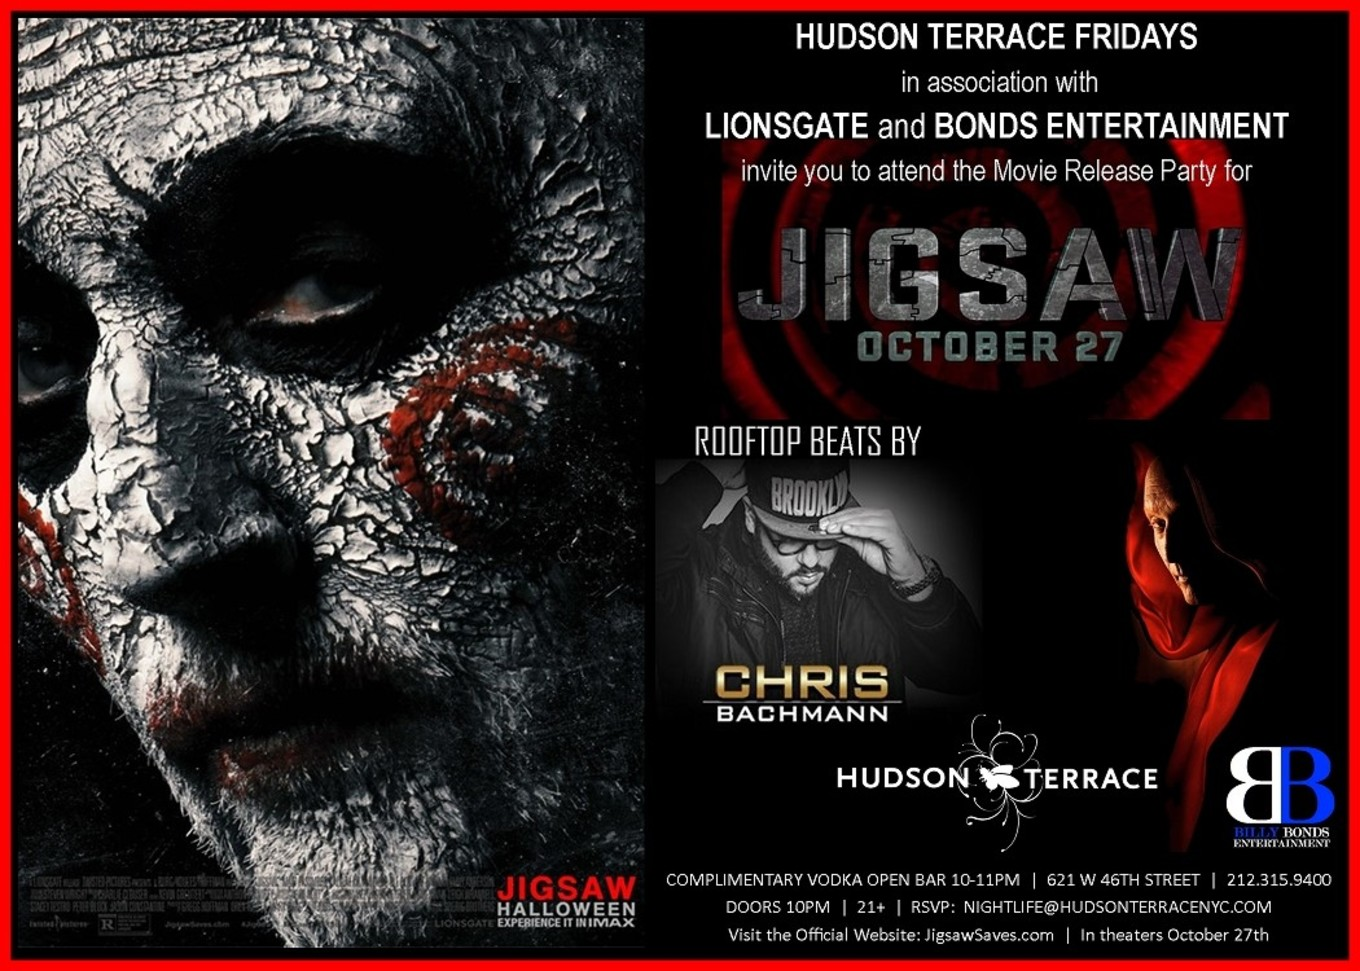 Jigsaw movie release party at hudson terrace halloween for Movie schedule terraces